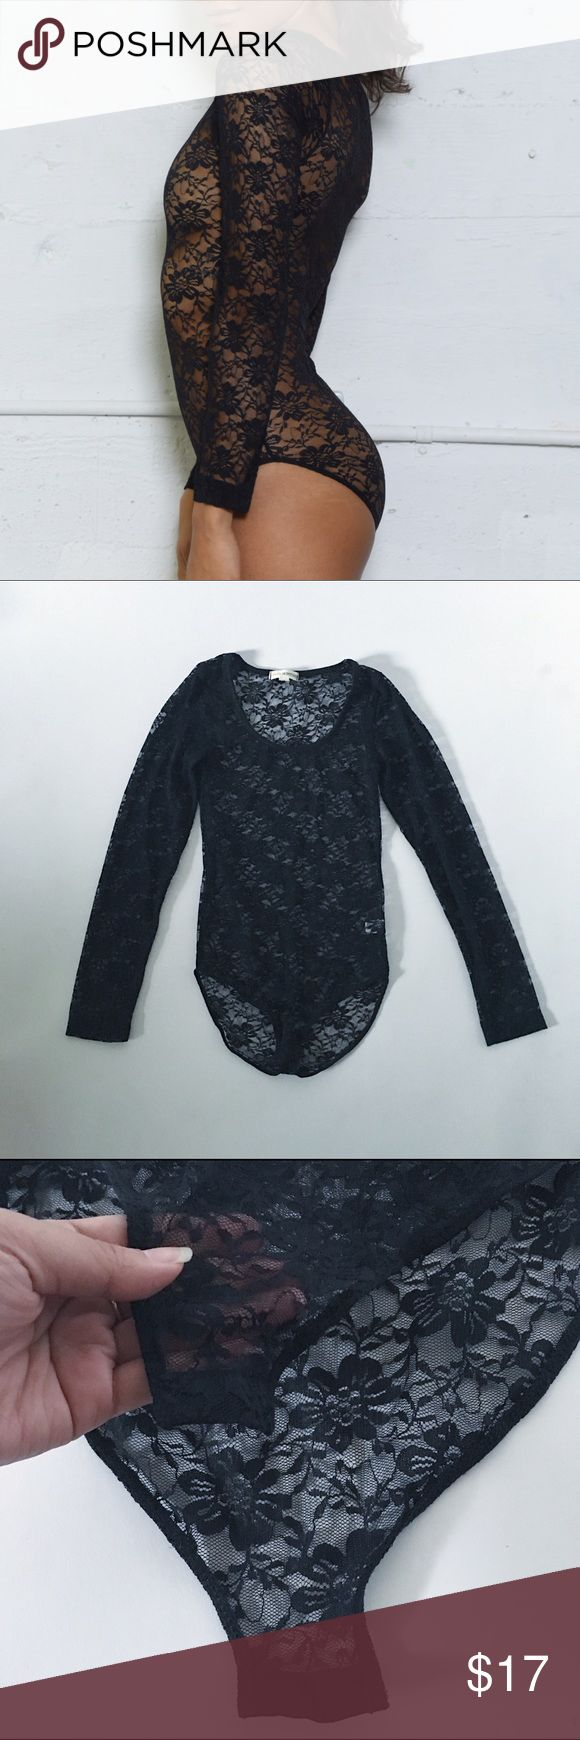 Sexy Black lace leotard long sleeve body suit Black lace long sleeve leotard NWOT New without tags Never worn Snaps at bottom for easy removable  Black Floral , bodysuit Tops